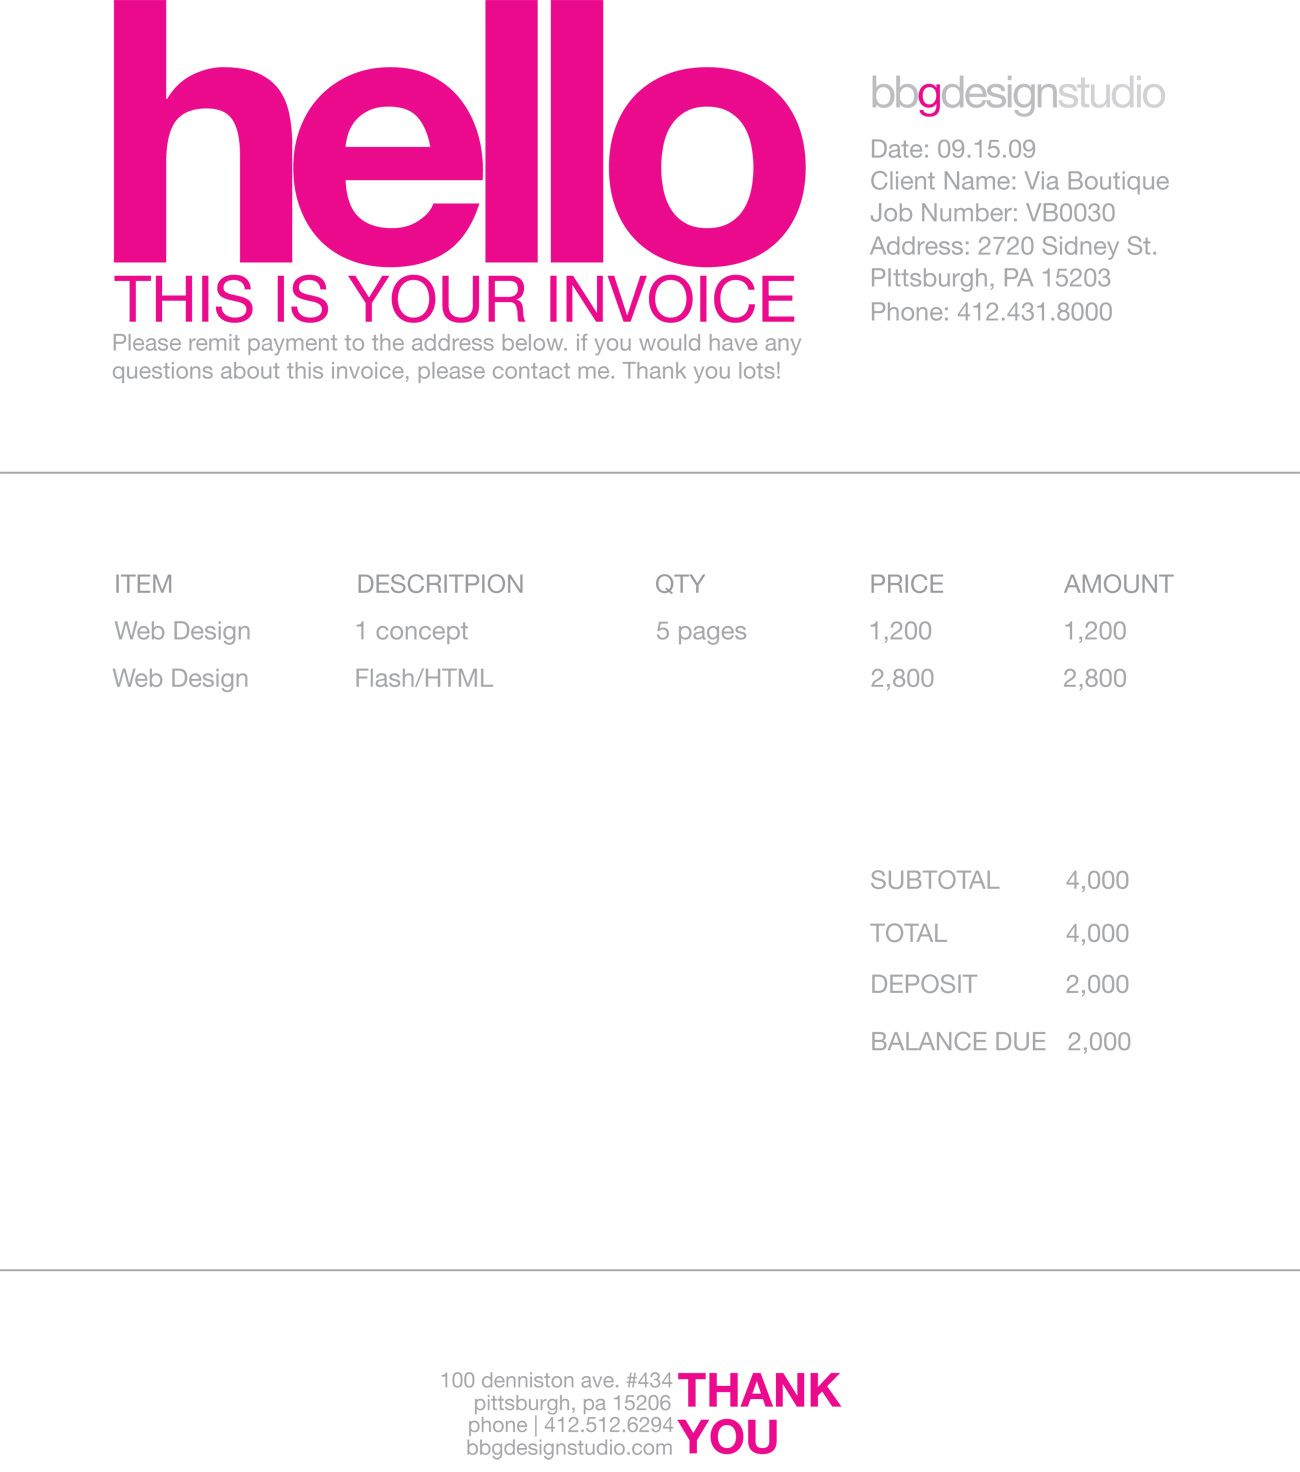 Reliefworkersus  Gorgeous  Images About Invoice Design On Pinterest With Fetching Print Invoice Besides My Invoices Furthermore Sending Invoice Email With Appealing Free Downloadable Invoice Template For Word Also Invoice Generator Mac In Addition Invoice Price By Vin And How To Create A Invoice As Well As Tracing Bills Of Lading To Sales Invoices Provides Evidence That Additionally Consumer Reports Dealer Invoice From Pinterestcom With Reliefworkersus  Fetching  Images About Invoice Design On Pinterest With Appealing Print Invoice Besides My Invoices Furthermore Sending Invoice Email And Gorgeous Free Downloadable Invoice Template For Word Also Invoice Generator Mac In Addition Invoice Price By Vin From Pinterestcom